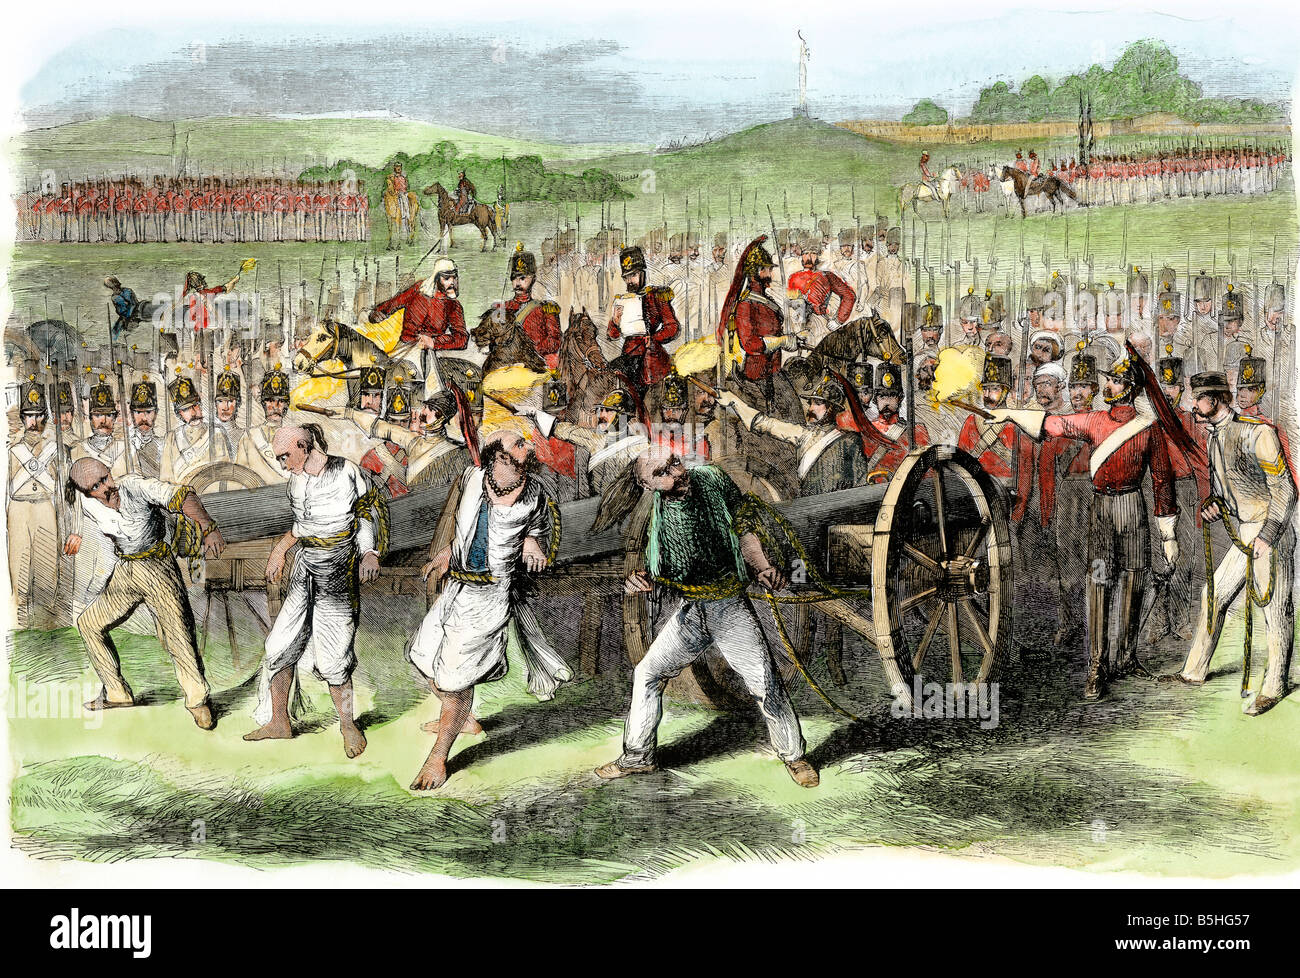 British military executing Sepoys by tying them to cannons during the rebeliion in India 1857. Hand-colored woodcut Stock Photo